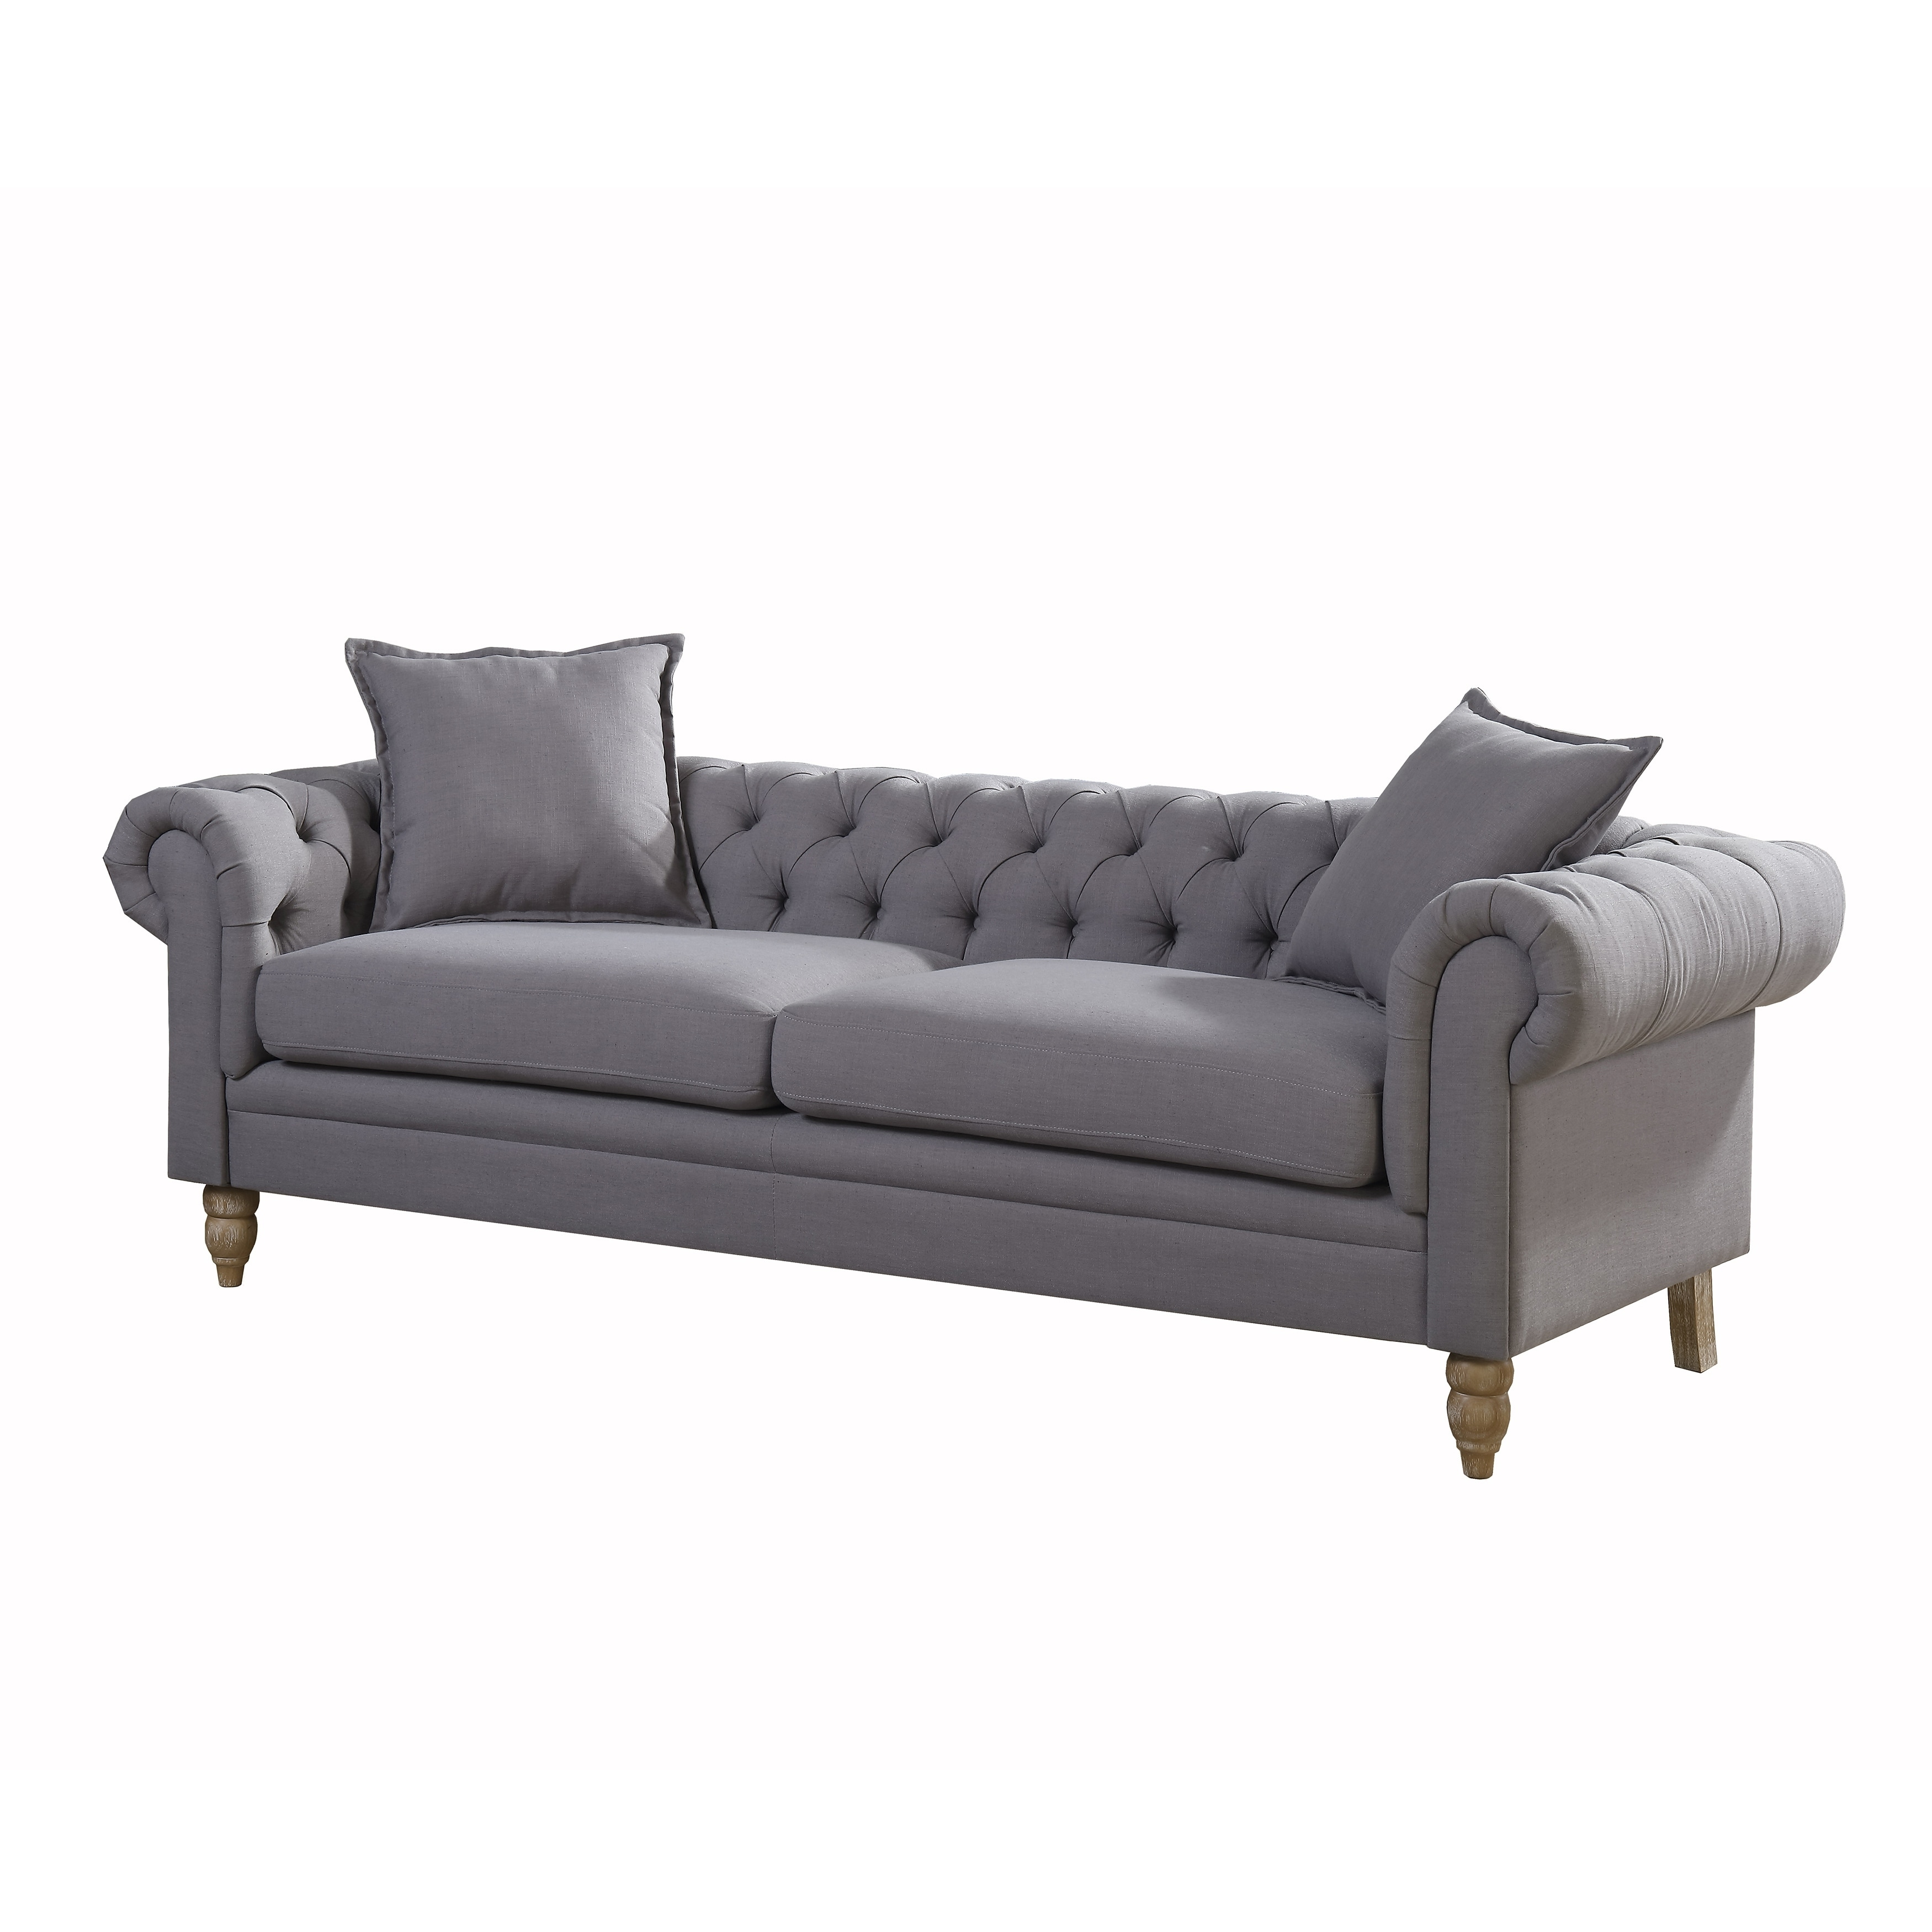 Juliet Contemporary Grey Upholstered Tufted Living Room Chesterfield Sofa